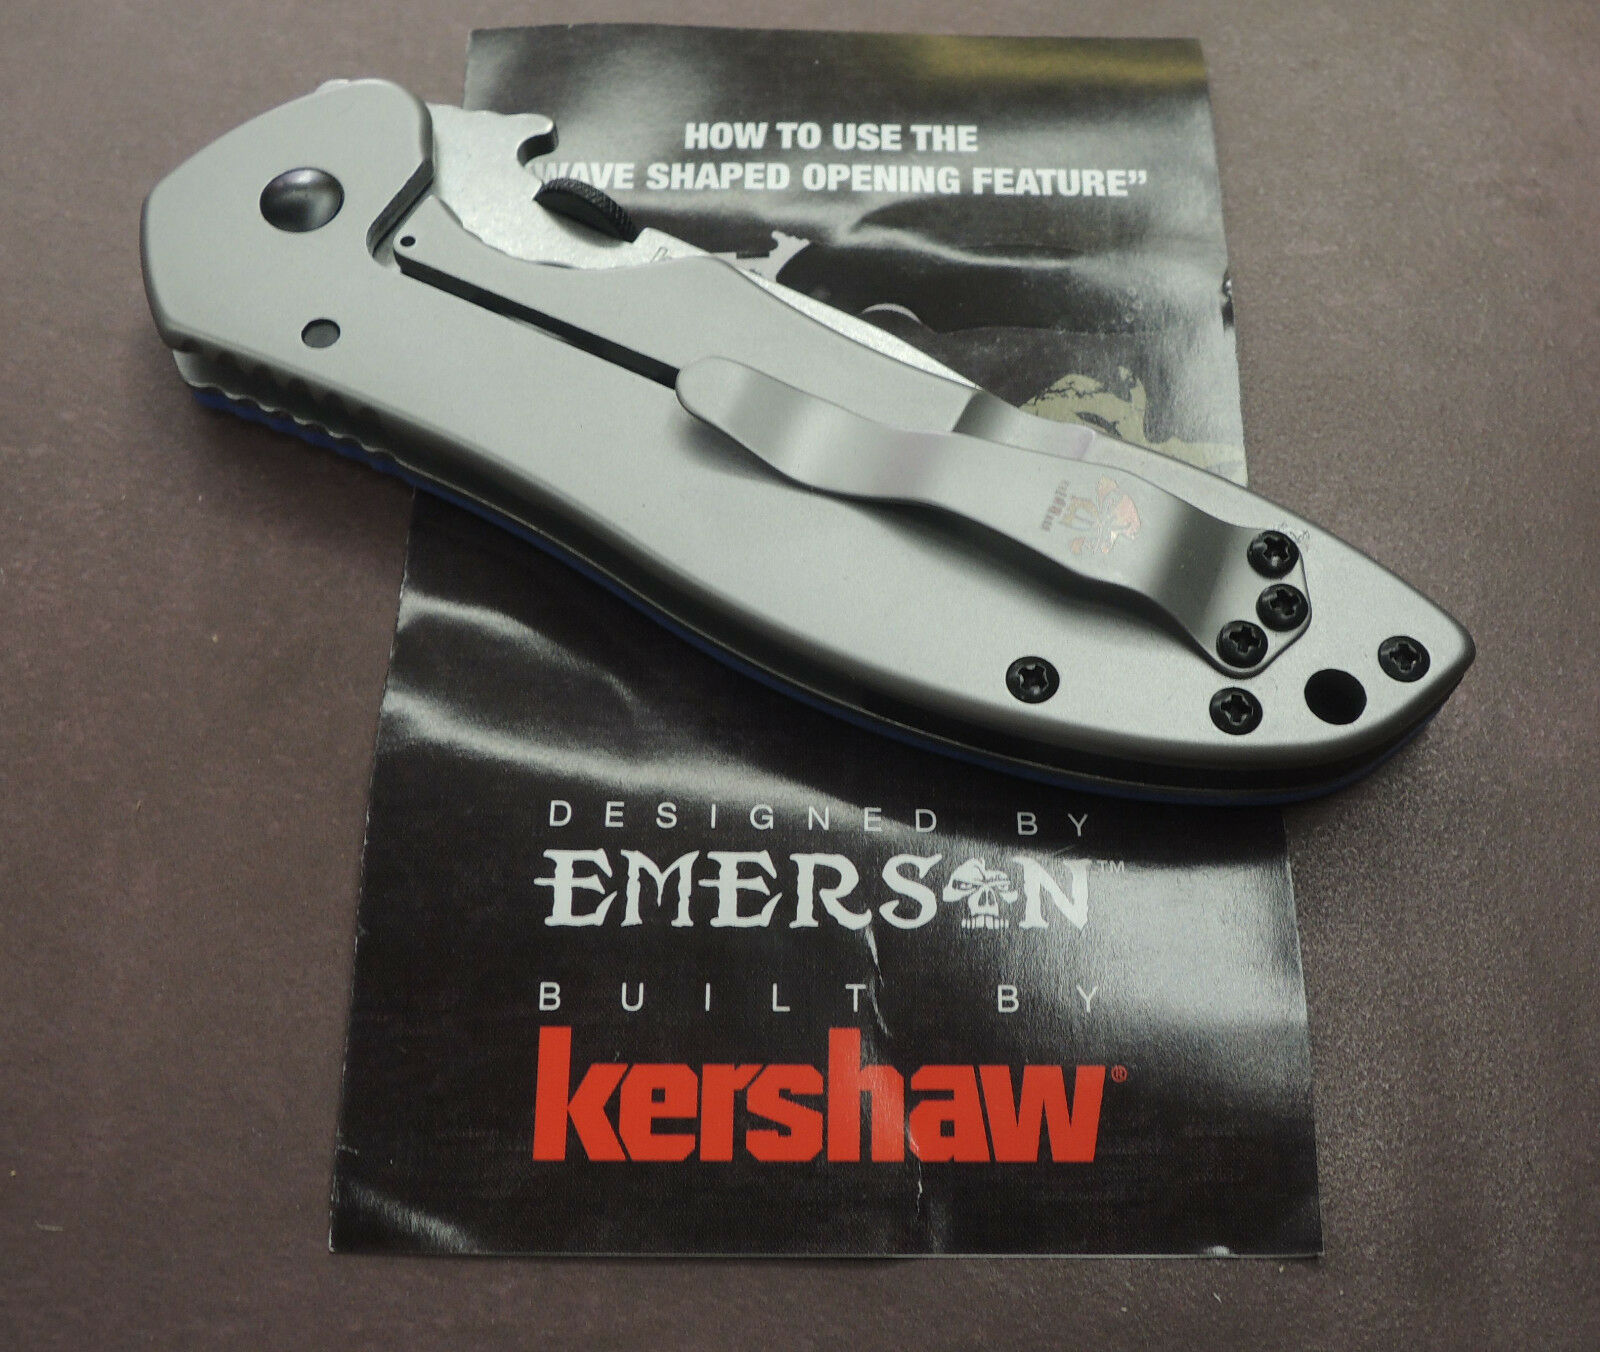 Kershaw Übungsmesser Messer E-TRAIN Messer Übungsmesser Kershaw Stumpf Emerson Design Trainingsmesser 5edd9d